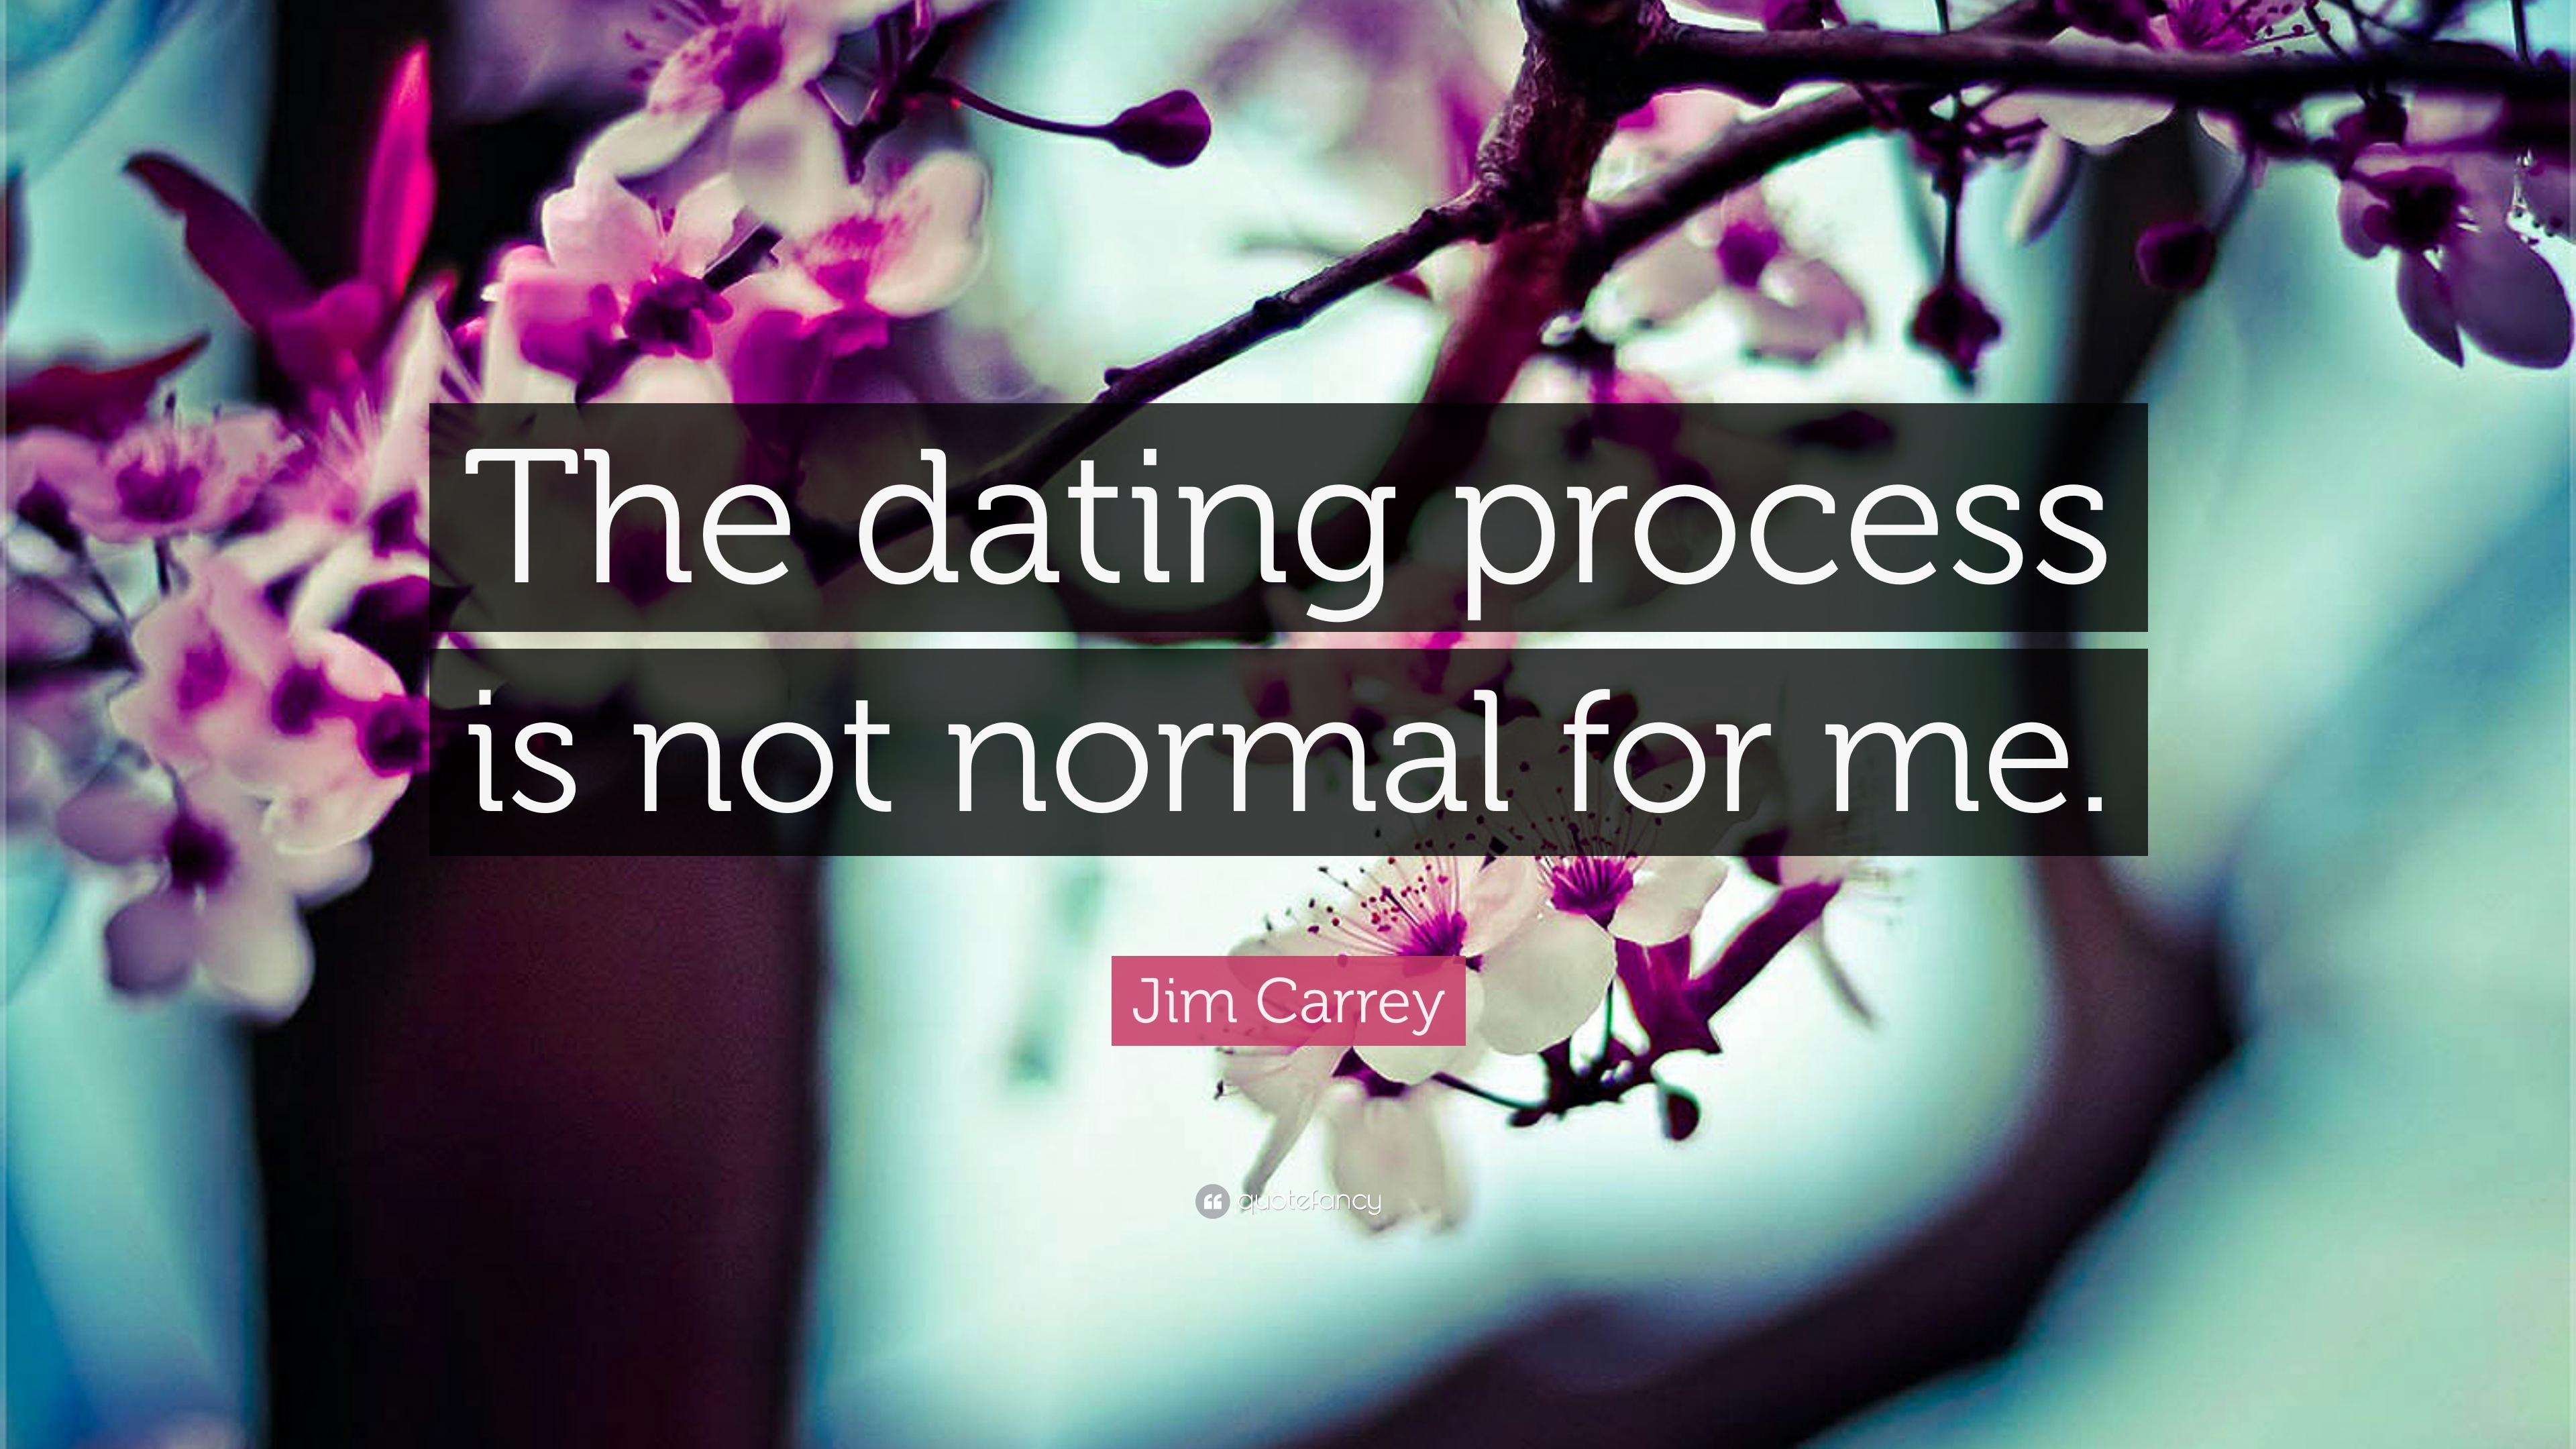 What is a normal dating process